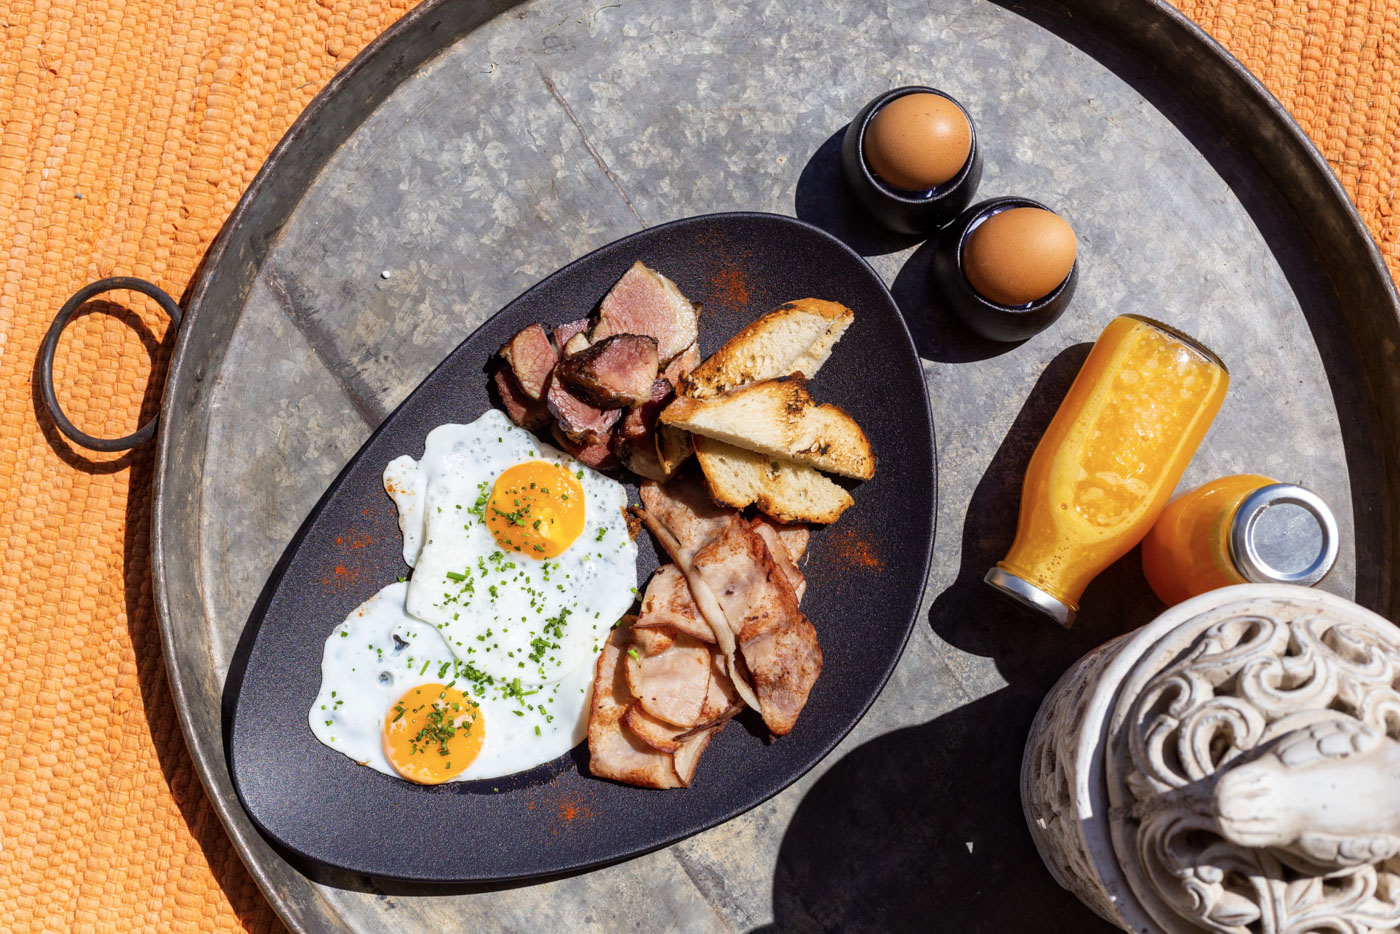 Elysian luxury hotel and spa Kalamata breakfast with fried eggs and bacon